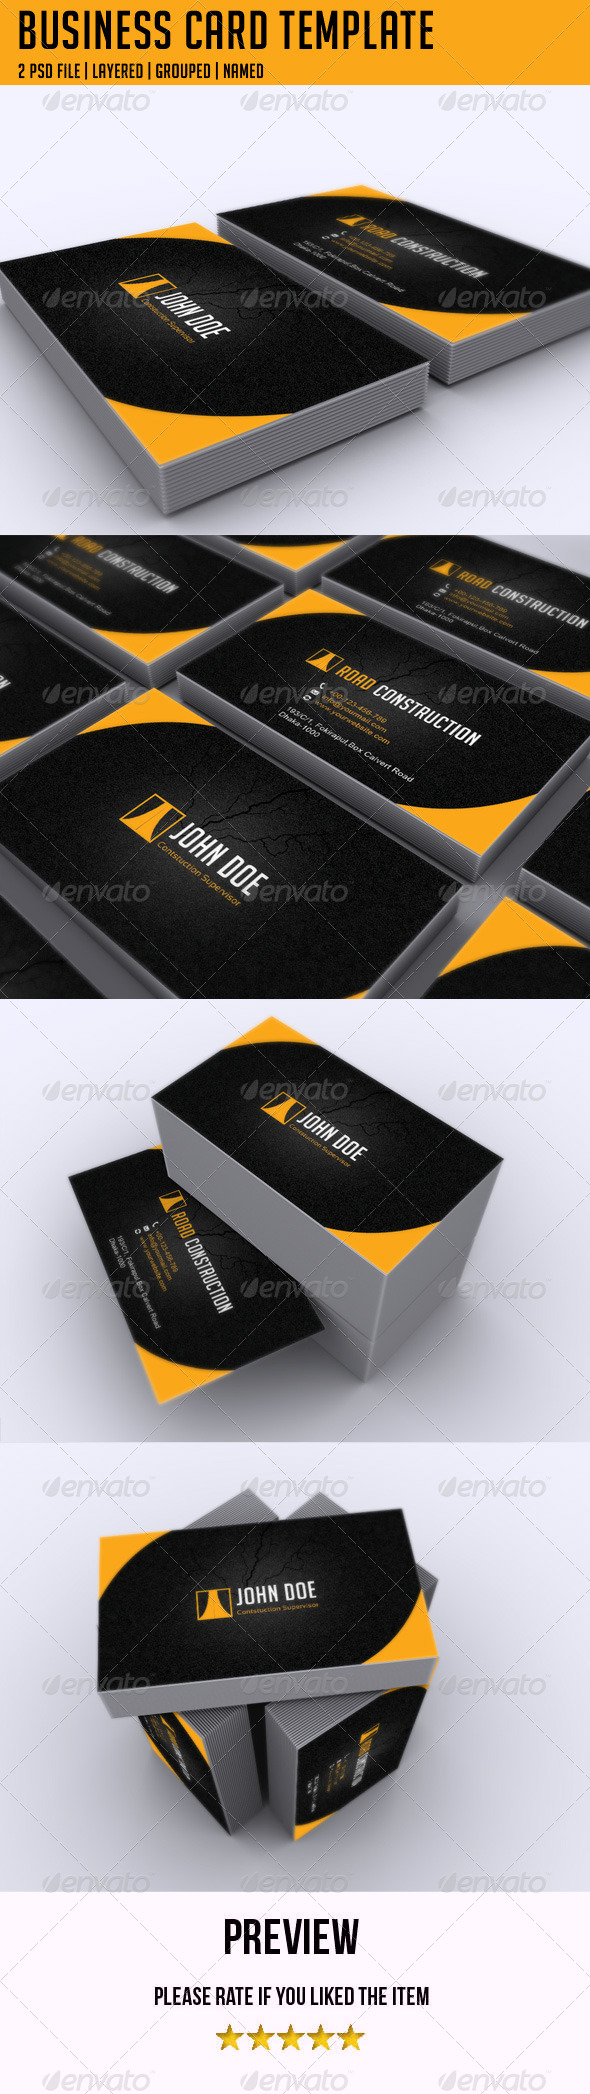 GraphicRiver Business Card Template 5167314